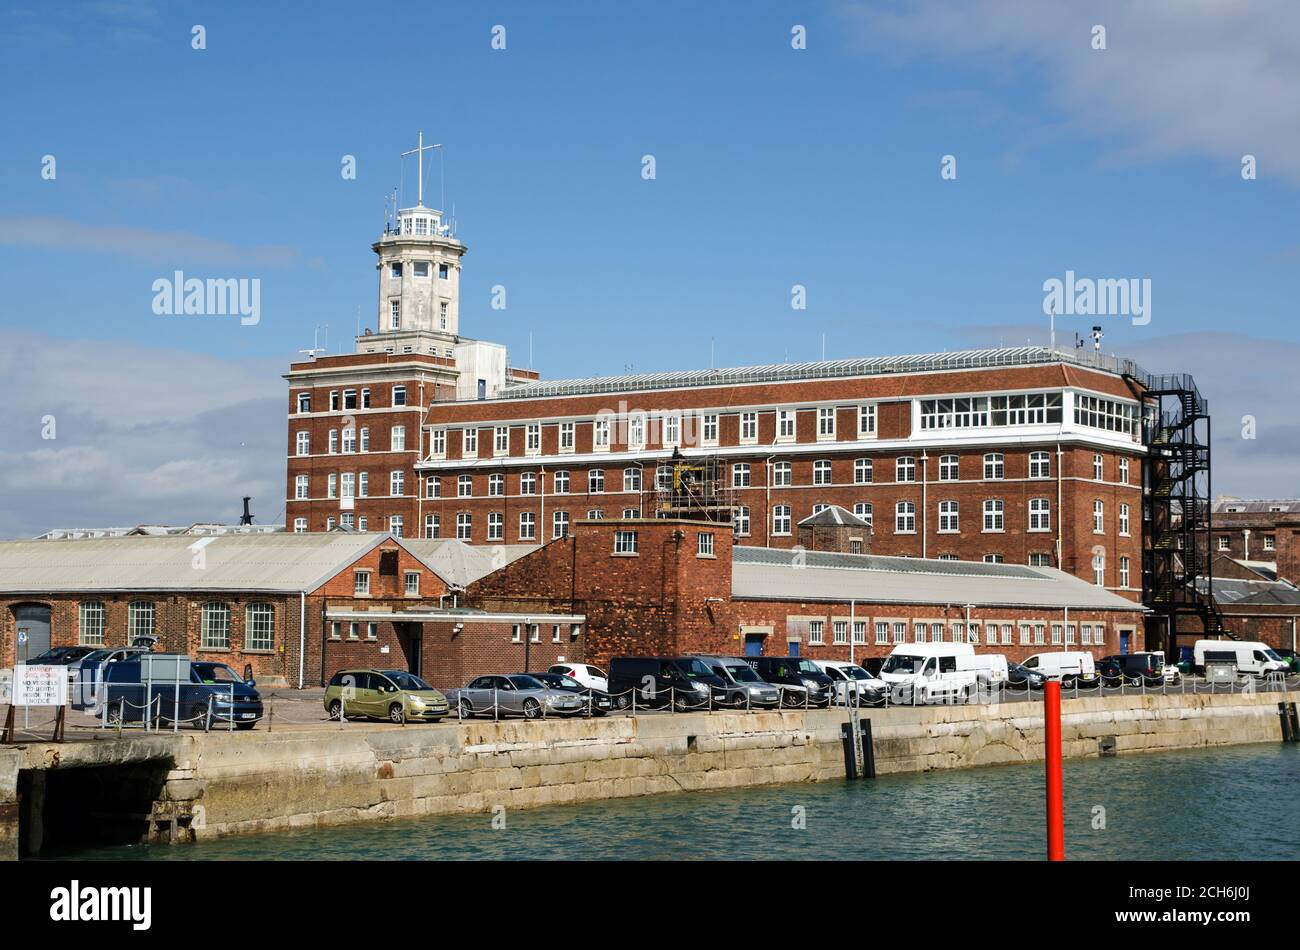 Portsmouth, UK - September 8, 2020: View from the sea looking towards the landmark Semaphore Towr on Portsmouth Harbour on a sunny summer morning.  Th Stock Photo